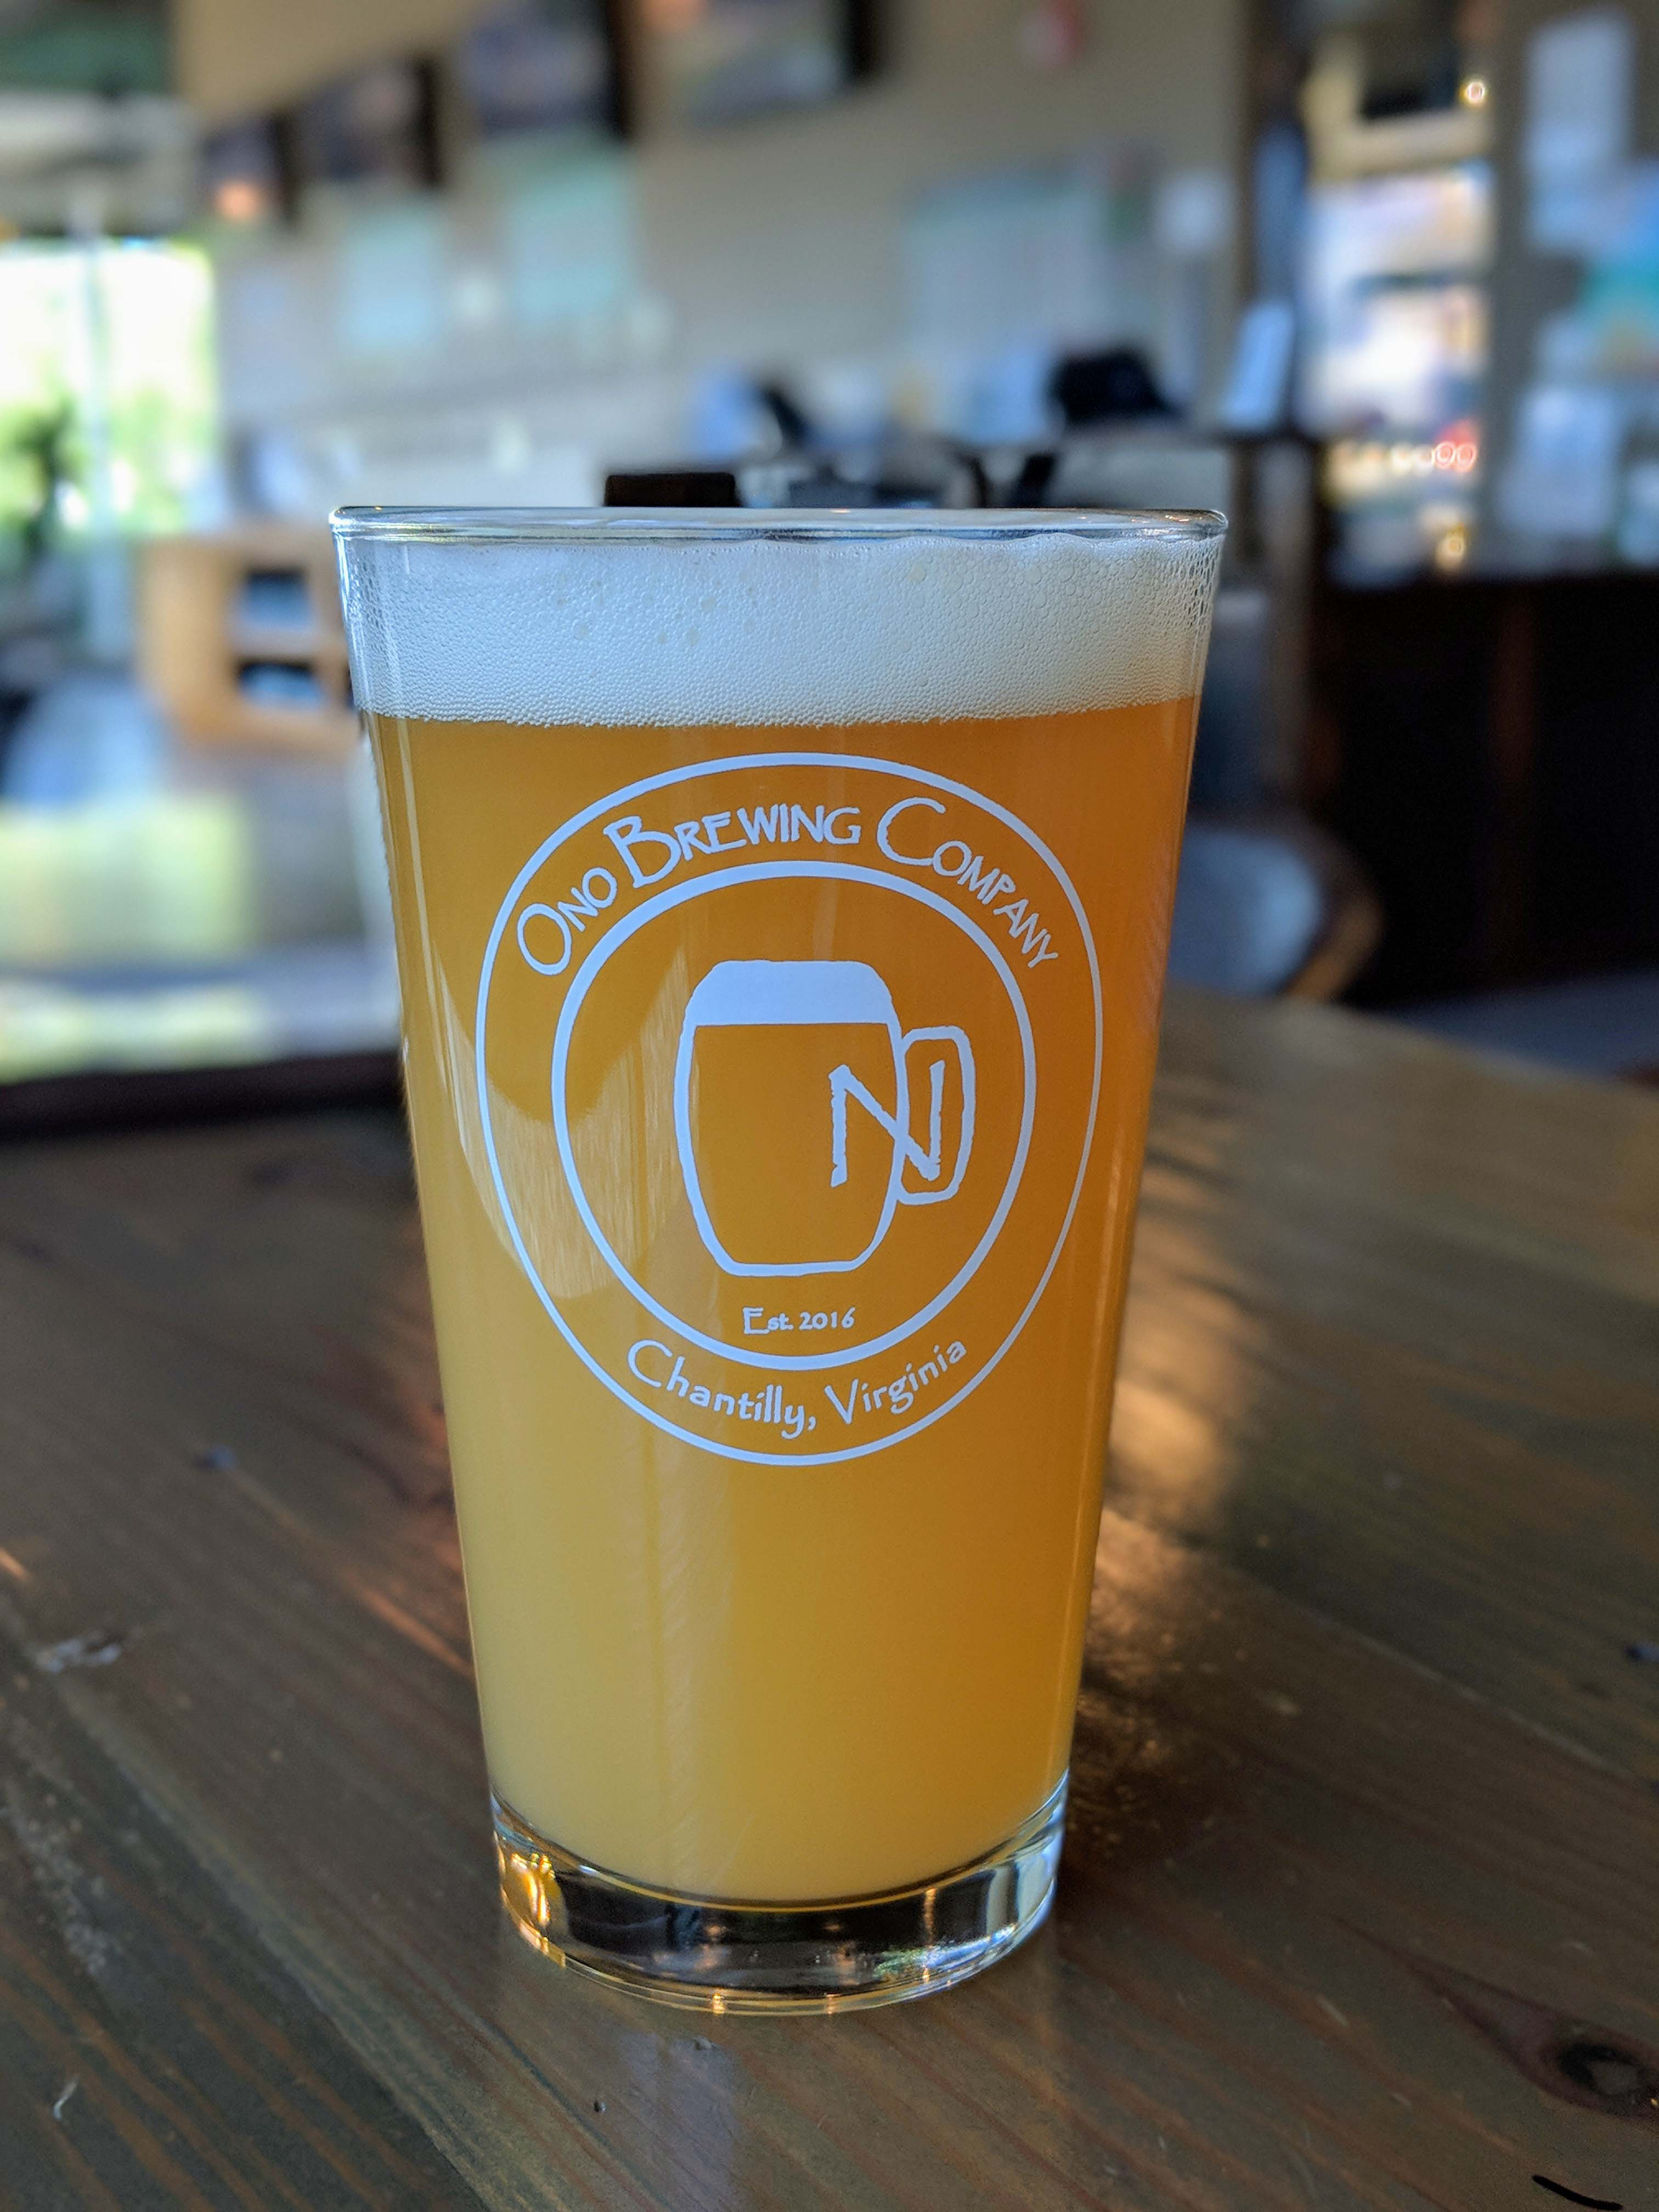 Ono Brewing Company, Chantilly craft beer